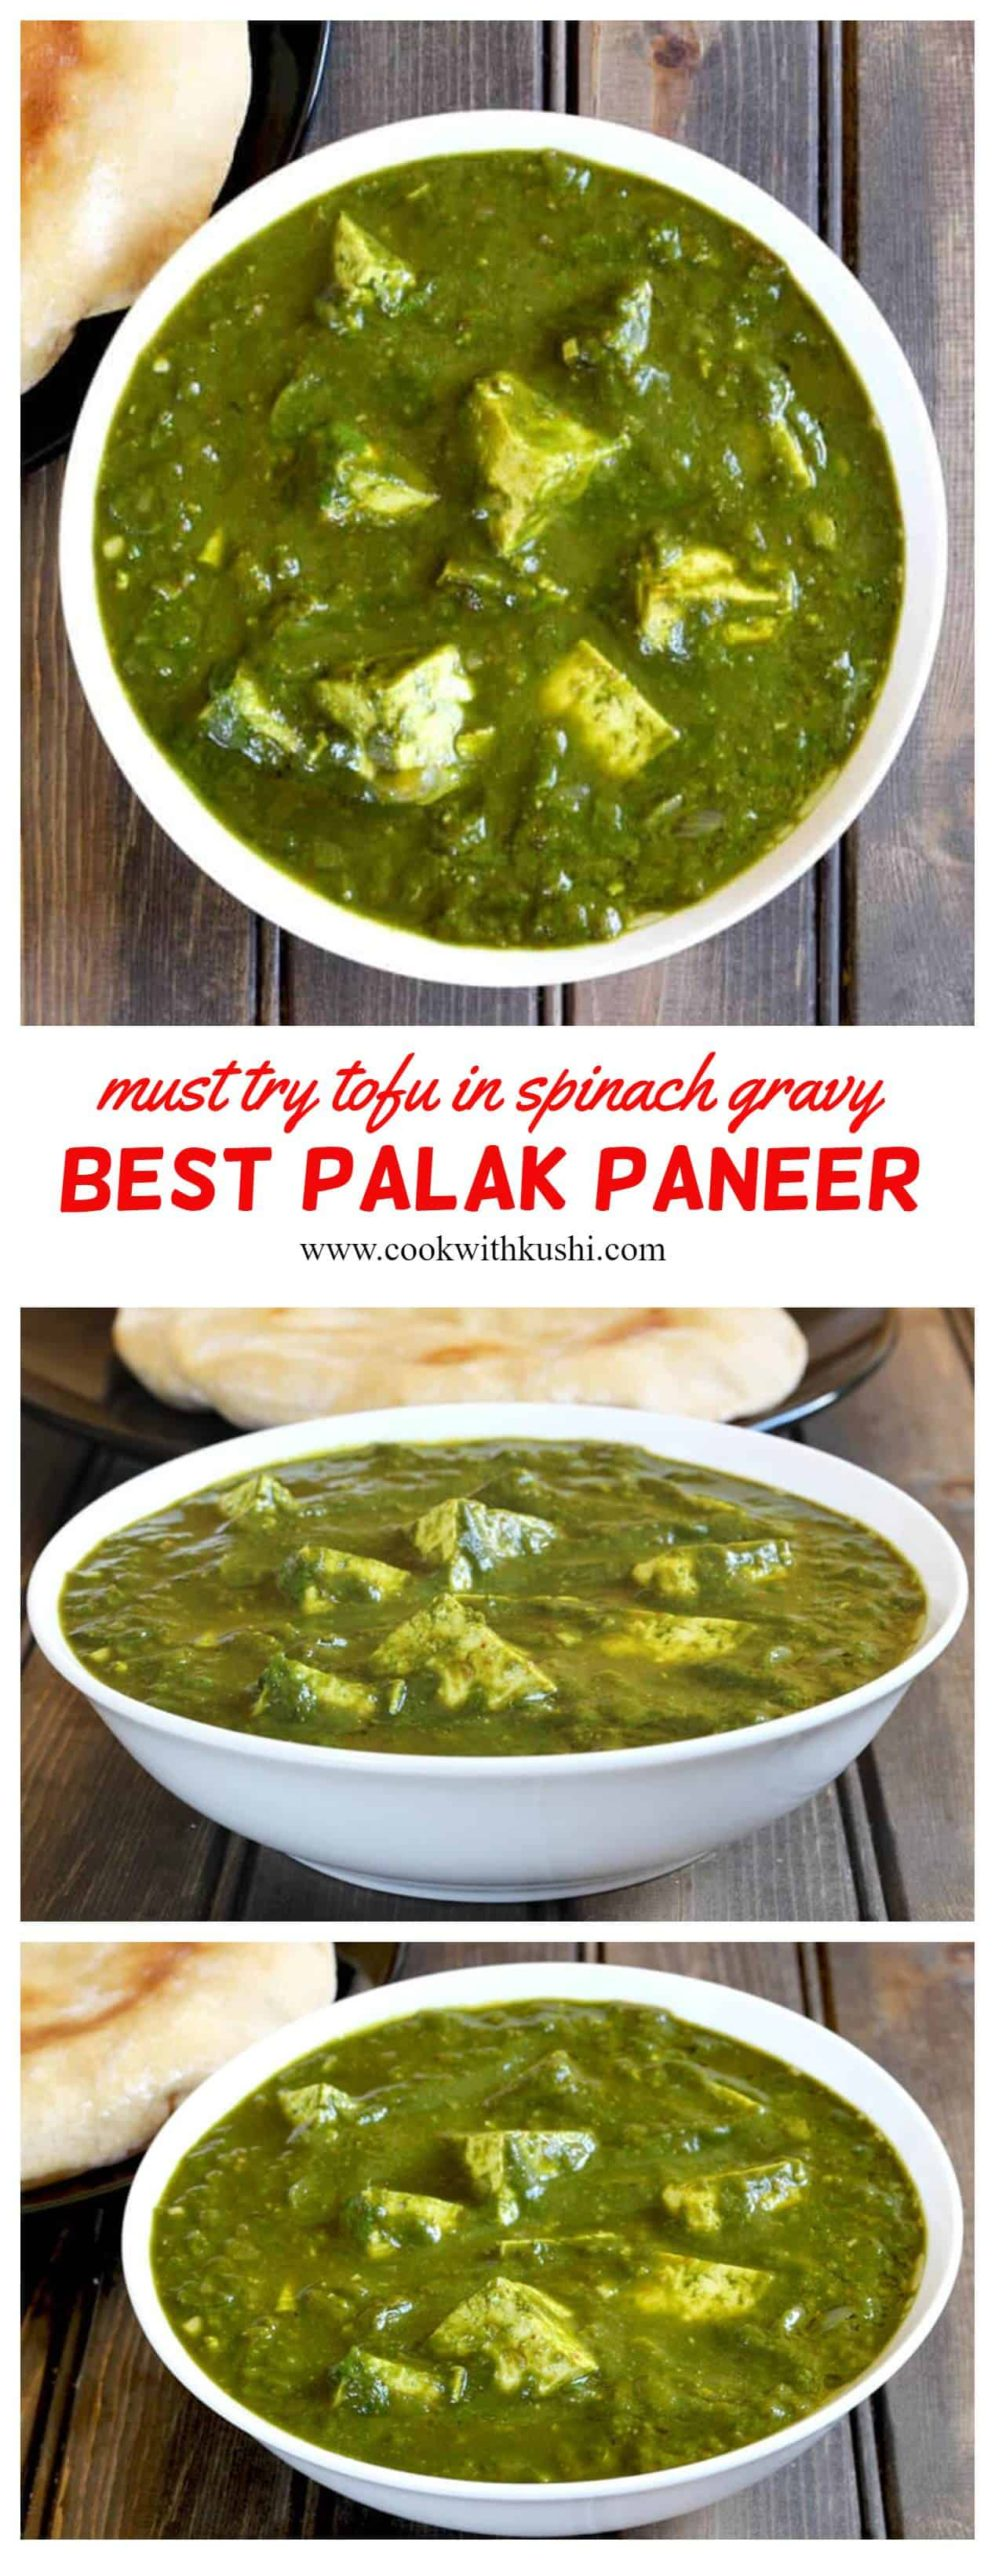 Palak Paneer is a popular Indian delicacy where the paneer or Indian cottage cheese is cooked in the spicy and aromatic spinach gravy. #palak #paneer #aloo #potatoes #sabji #curry #gravy #popularindianrecipes #tofurecipes #howtomakepalakpaneer #popularIndiandishes